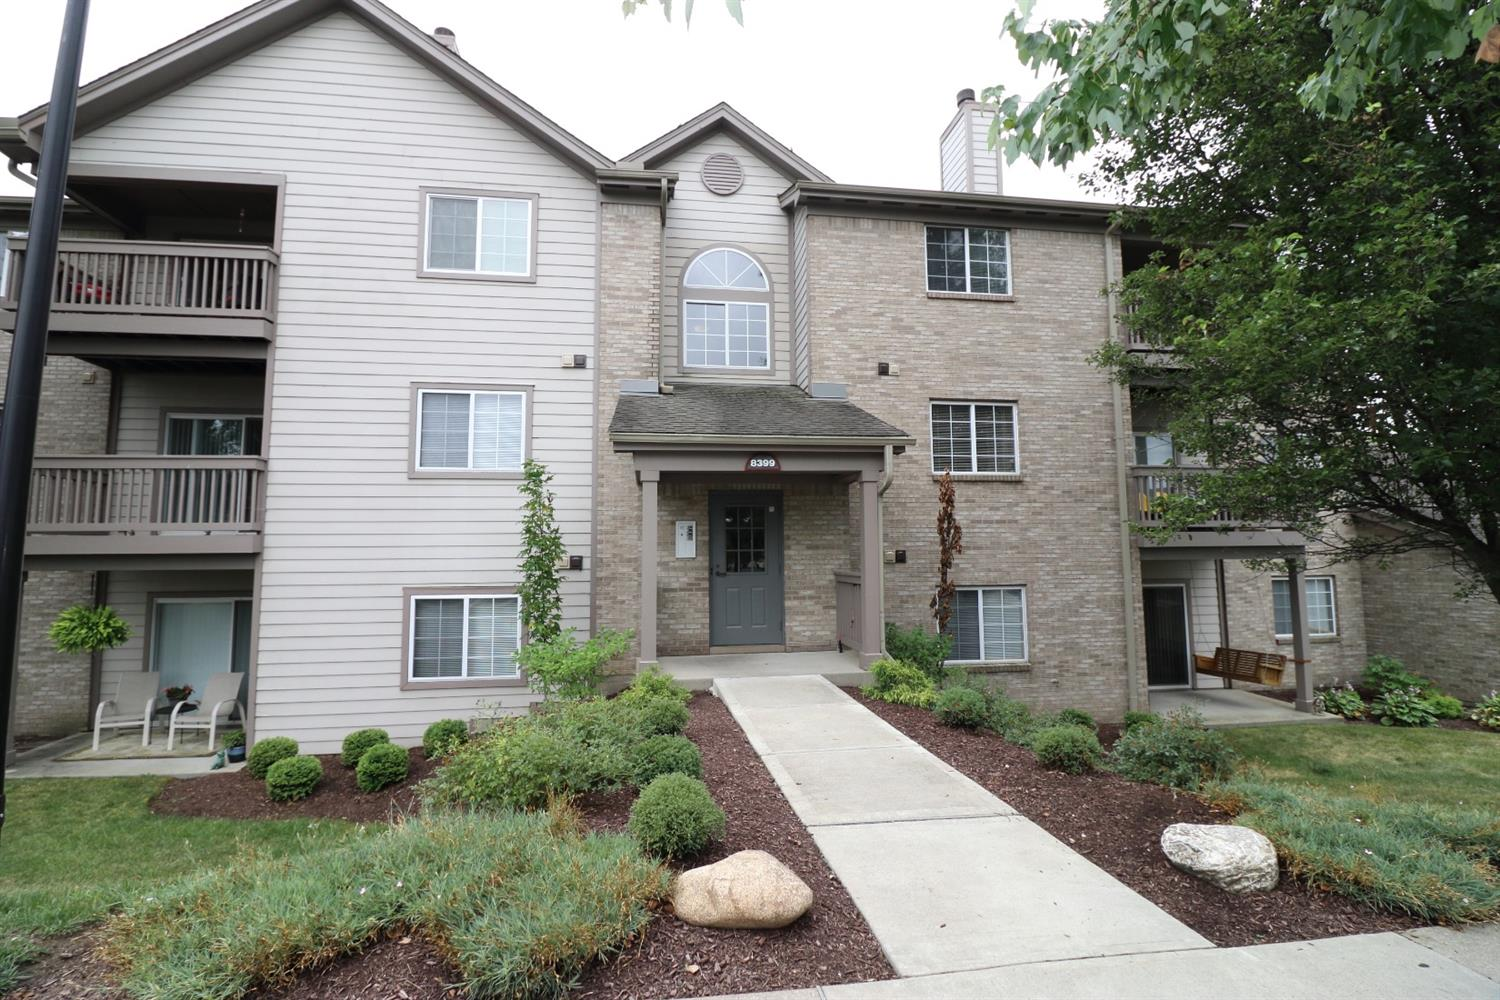 Property for sale at 8399 Spring Valley Court Unit: 206, West Chester,  Ohio 45069